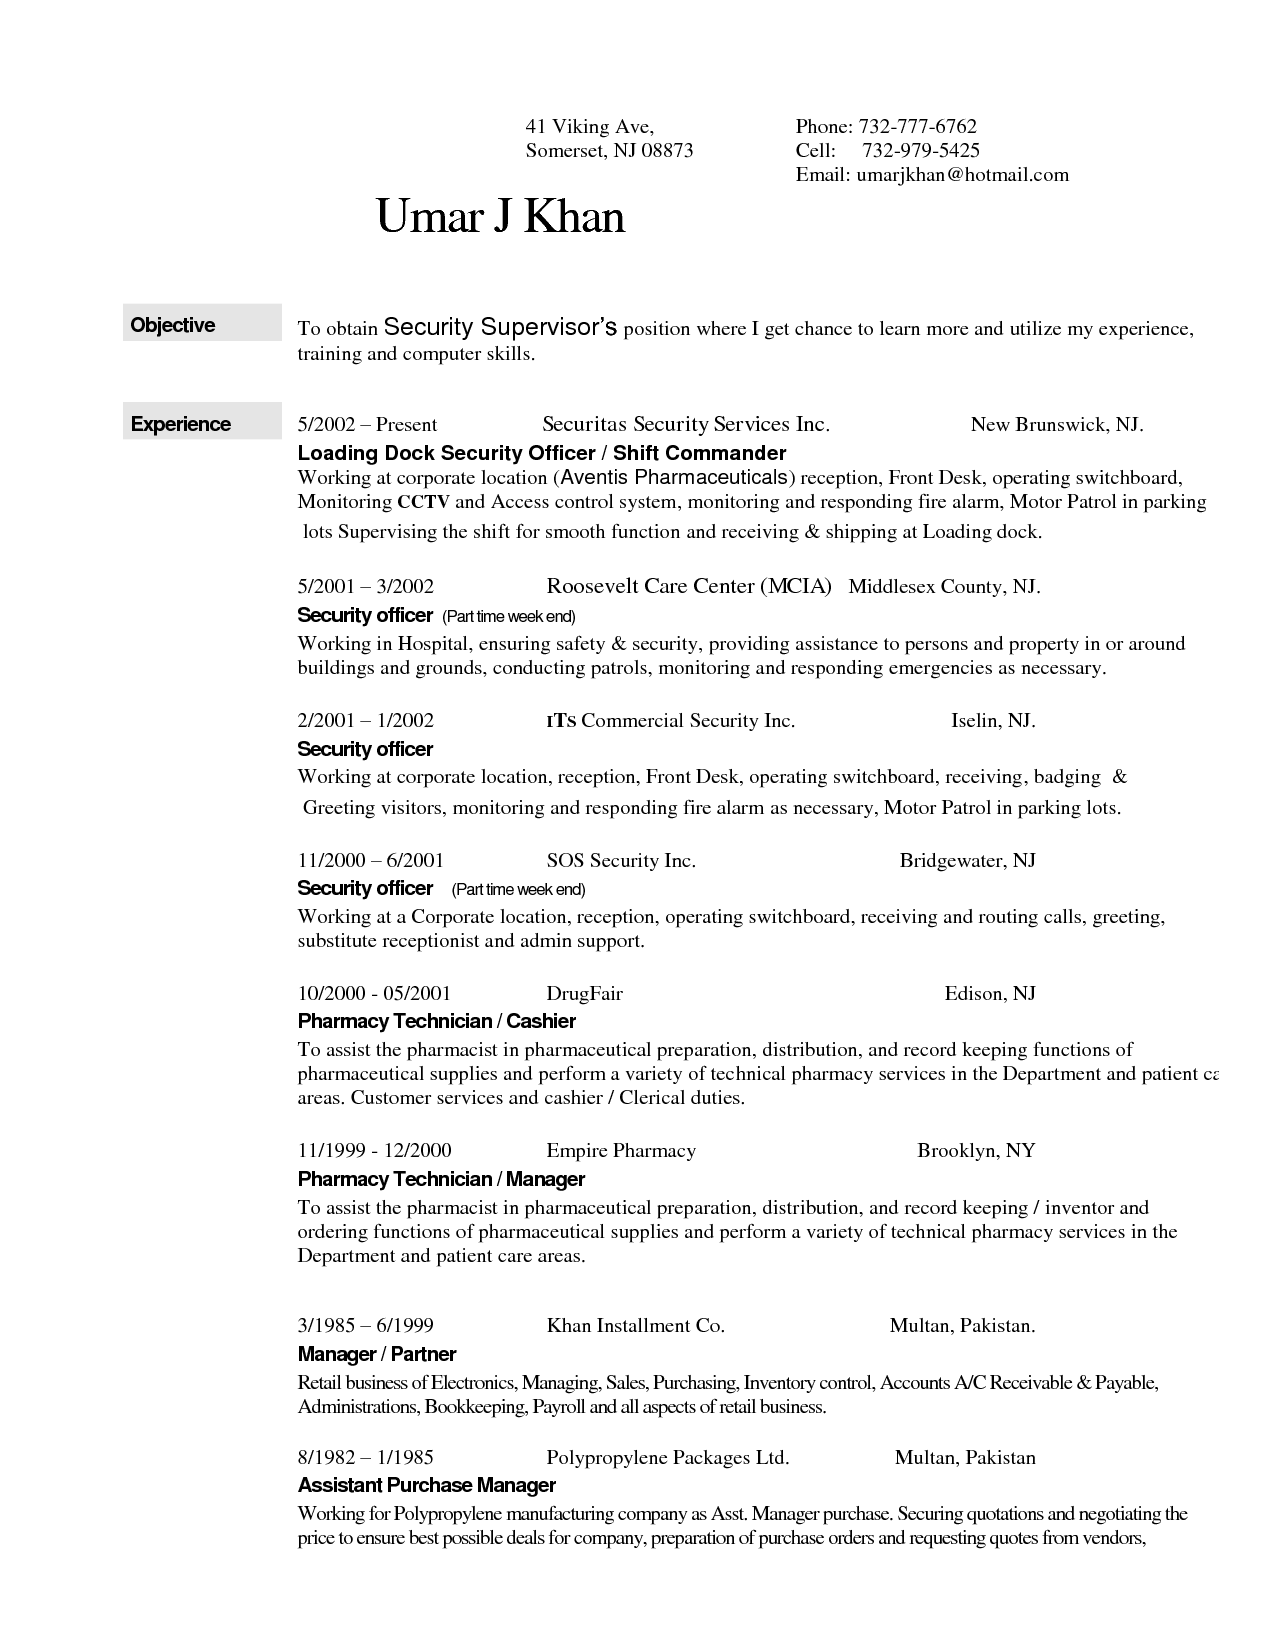 Pin by latestresume on Latest Resume | Sample resume, Resume, Job resume